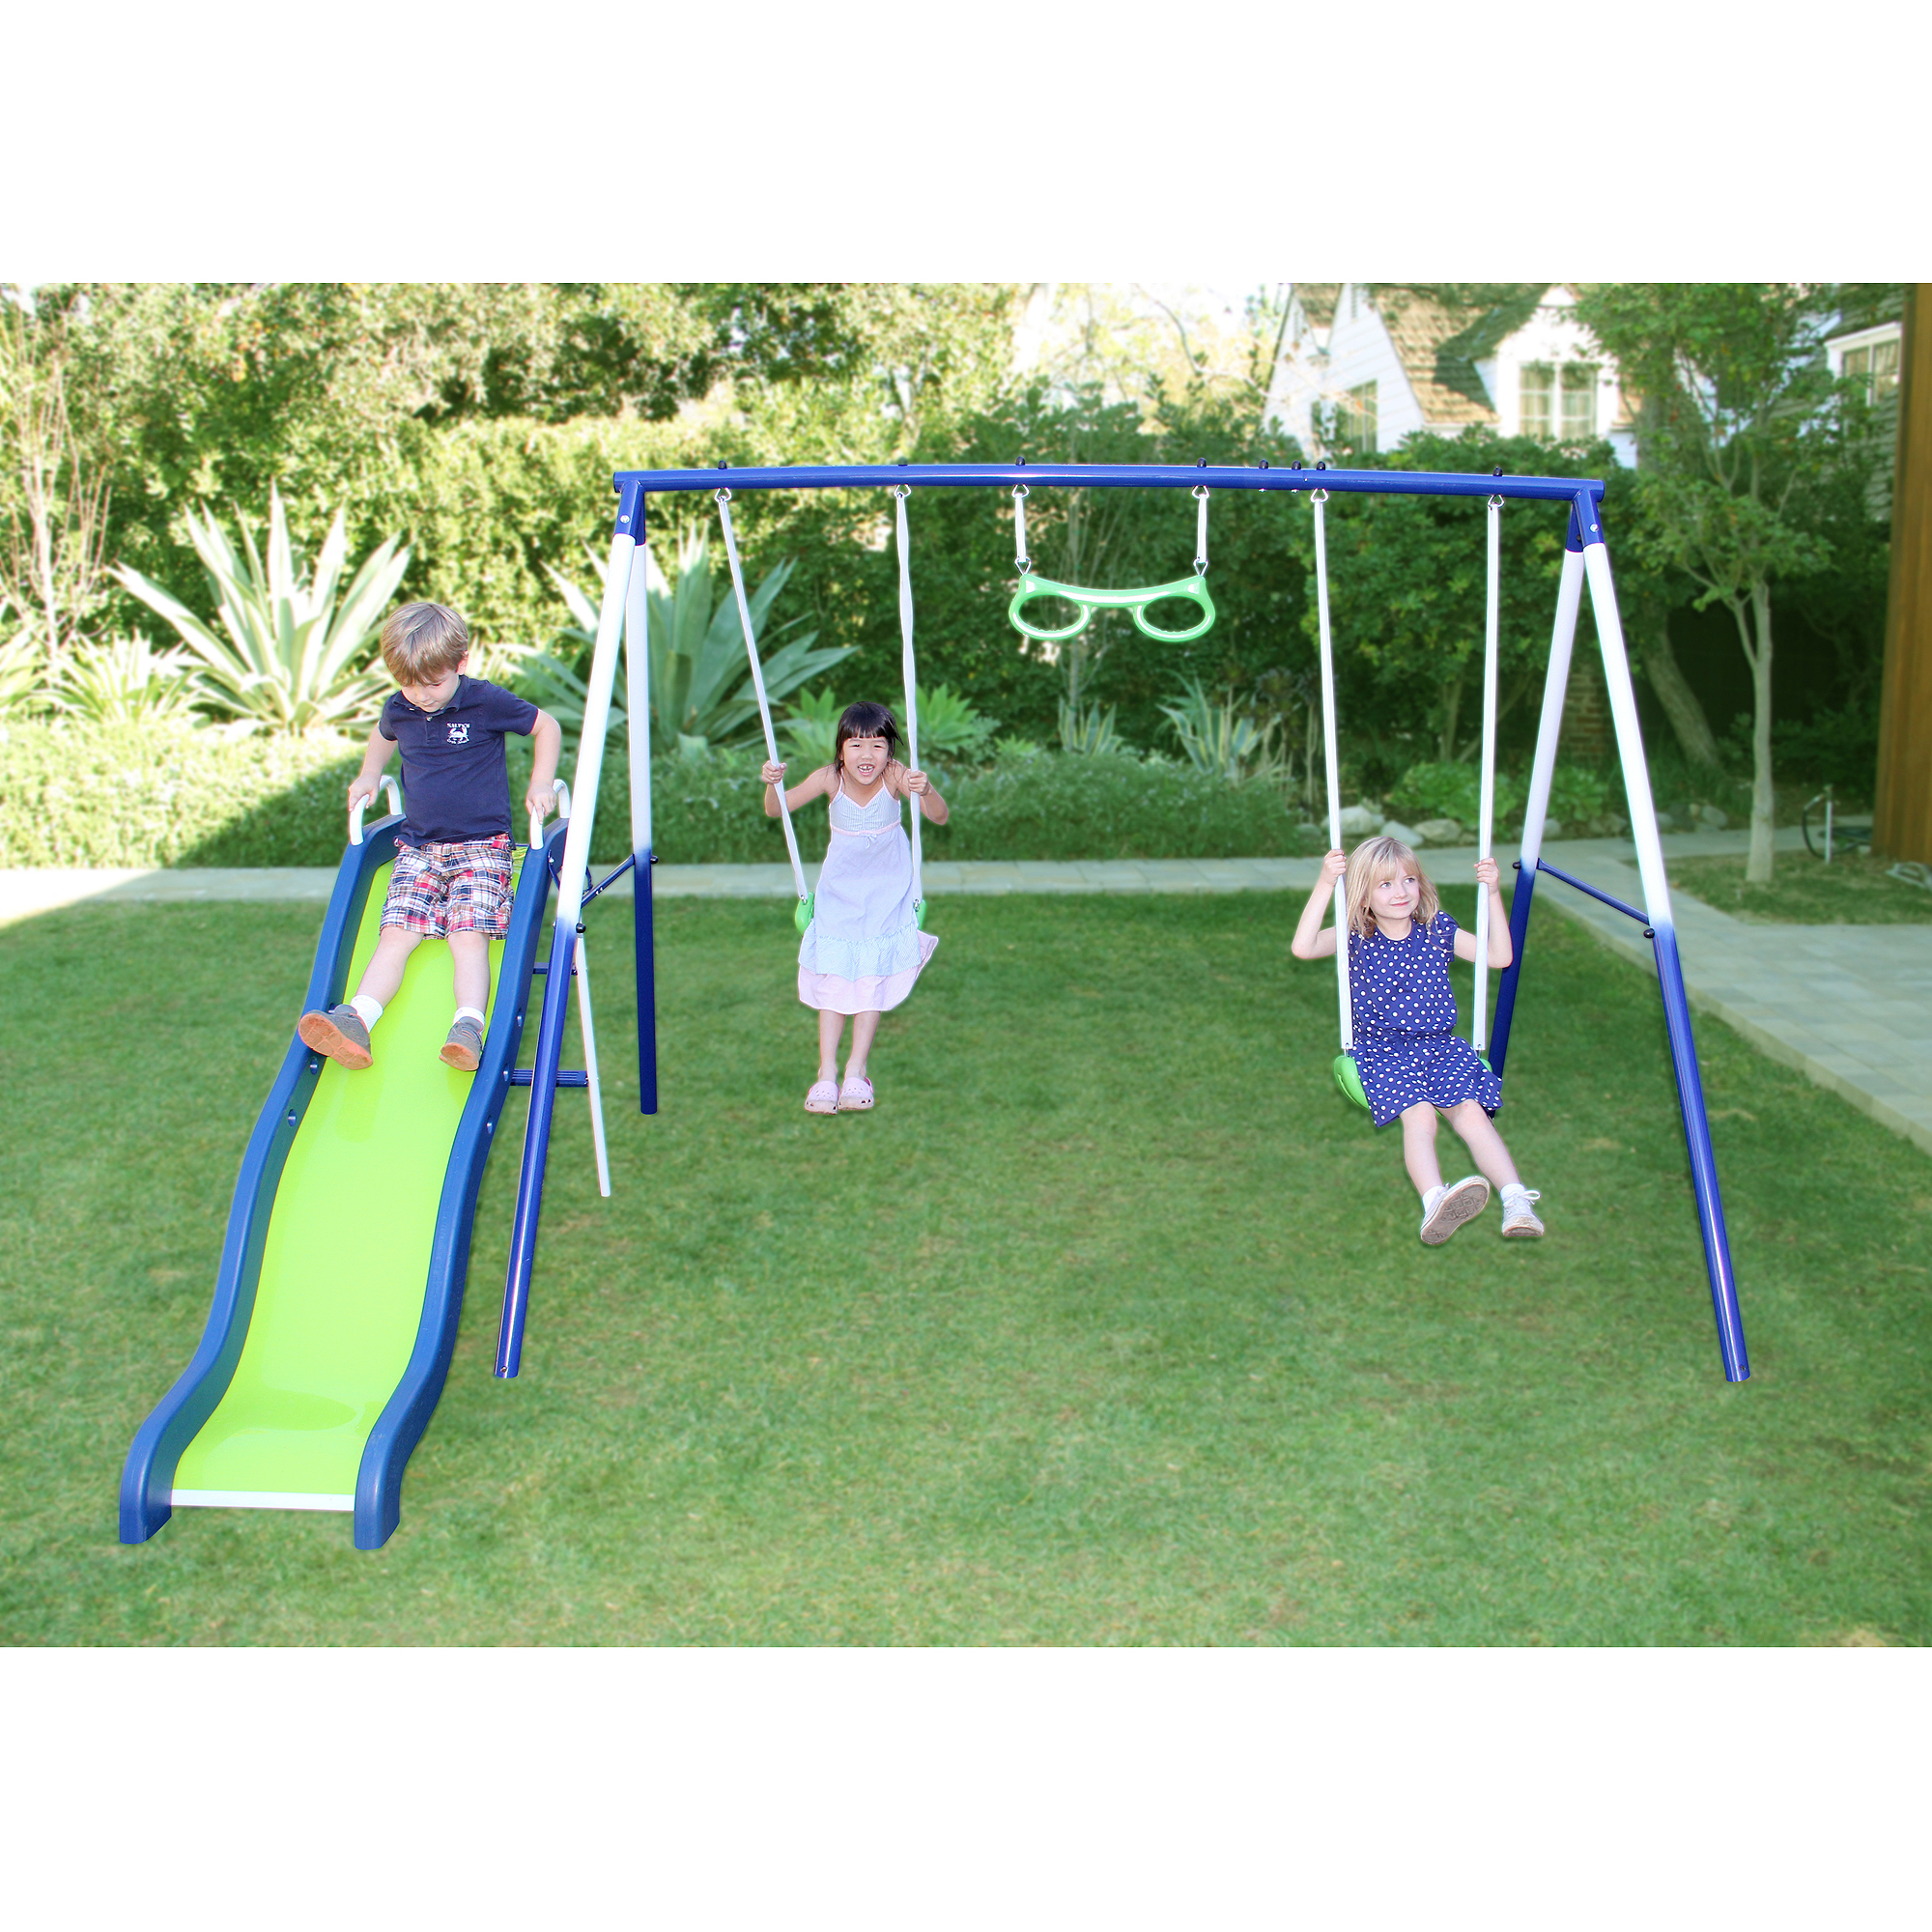 for backyards equipment backyard to tips lovely secret l kids swing create perfect sets playground